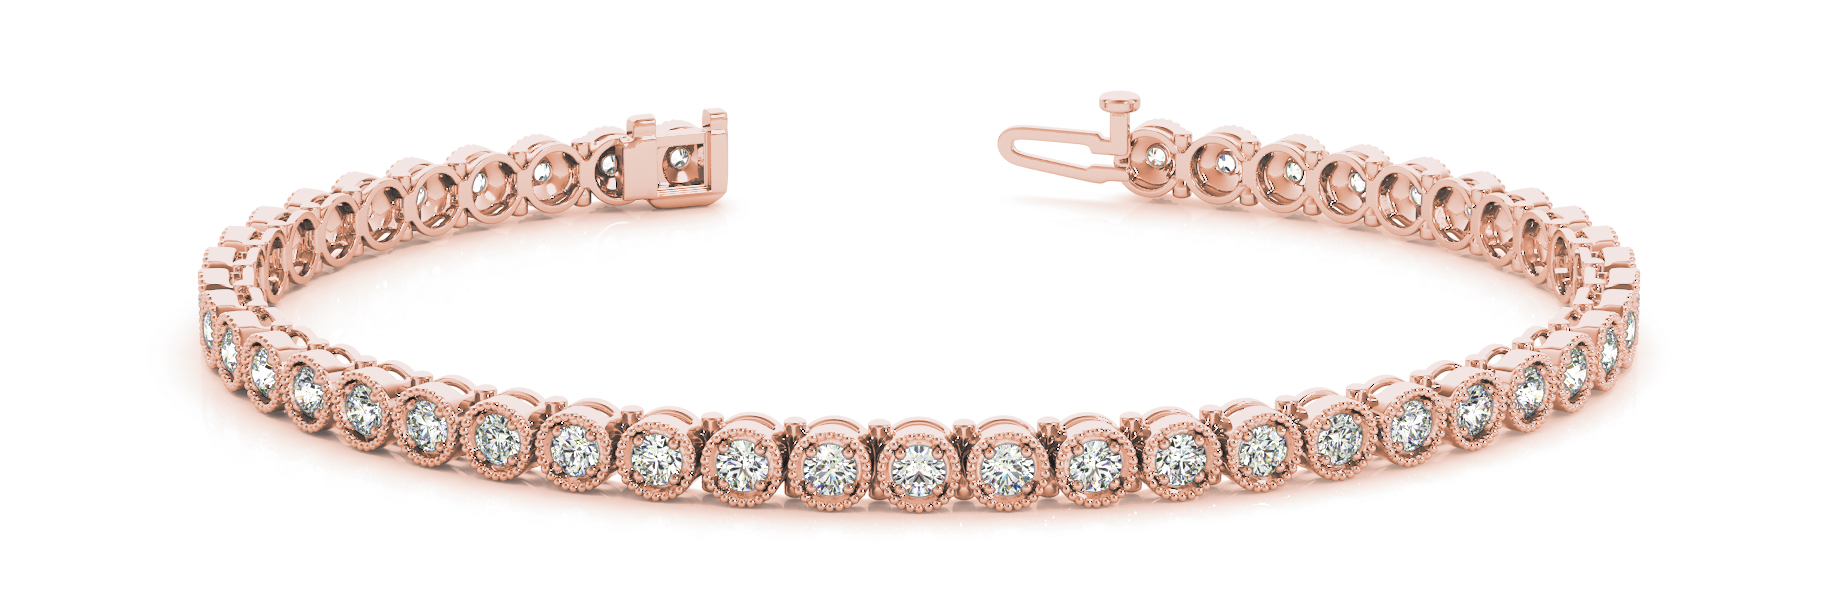 Vintage Style Round Diamond Bracelet Rose Gold 0.90 Ct.